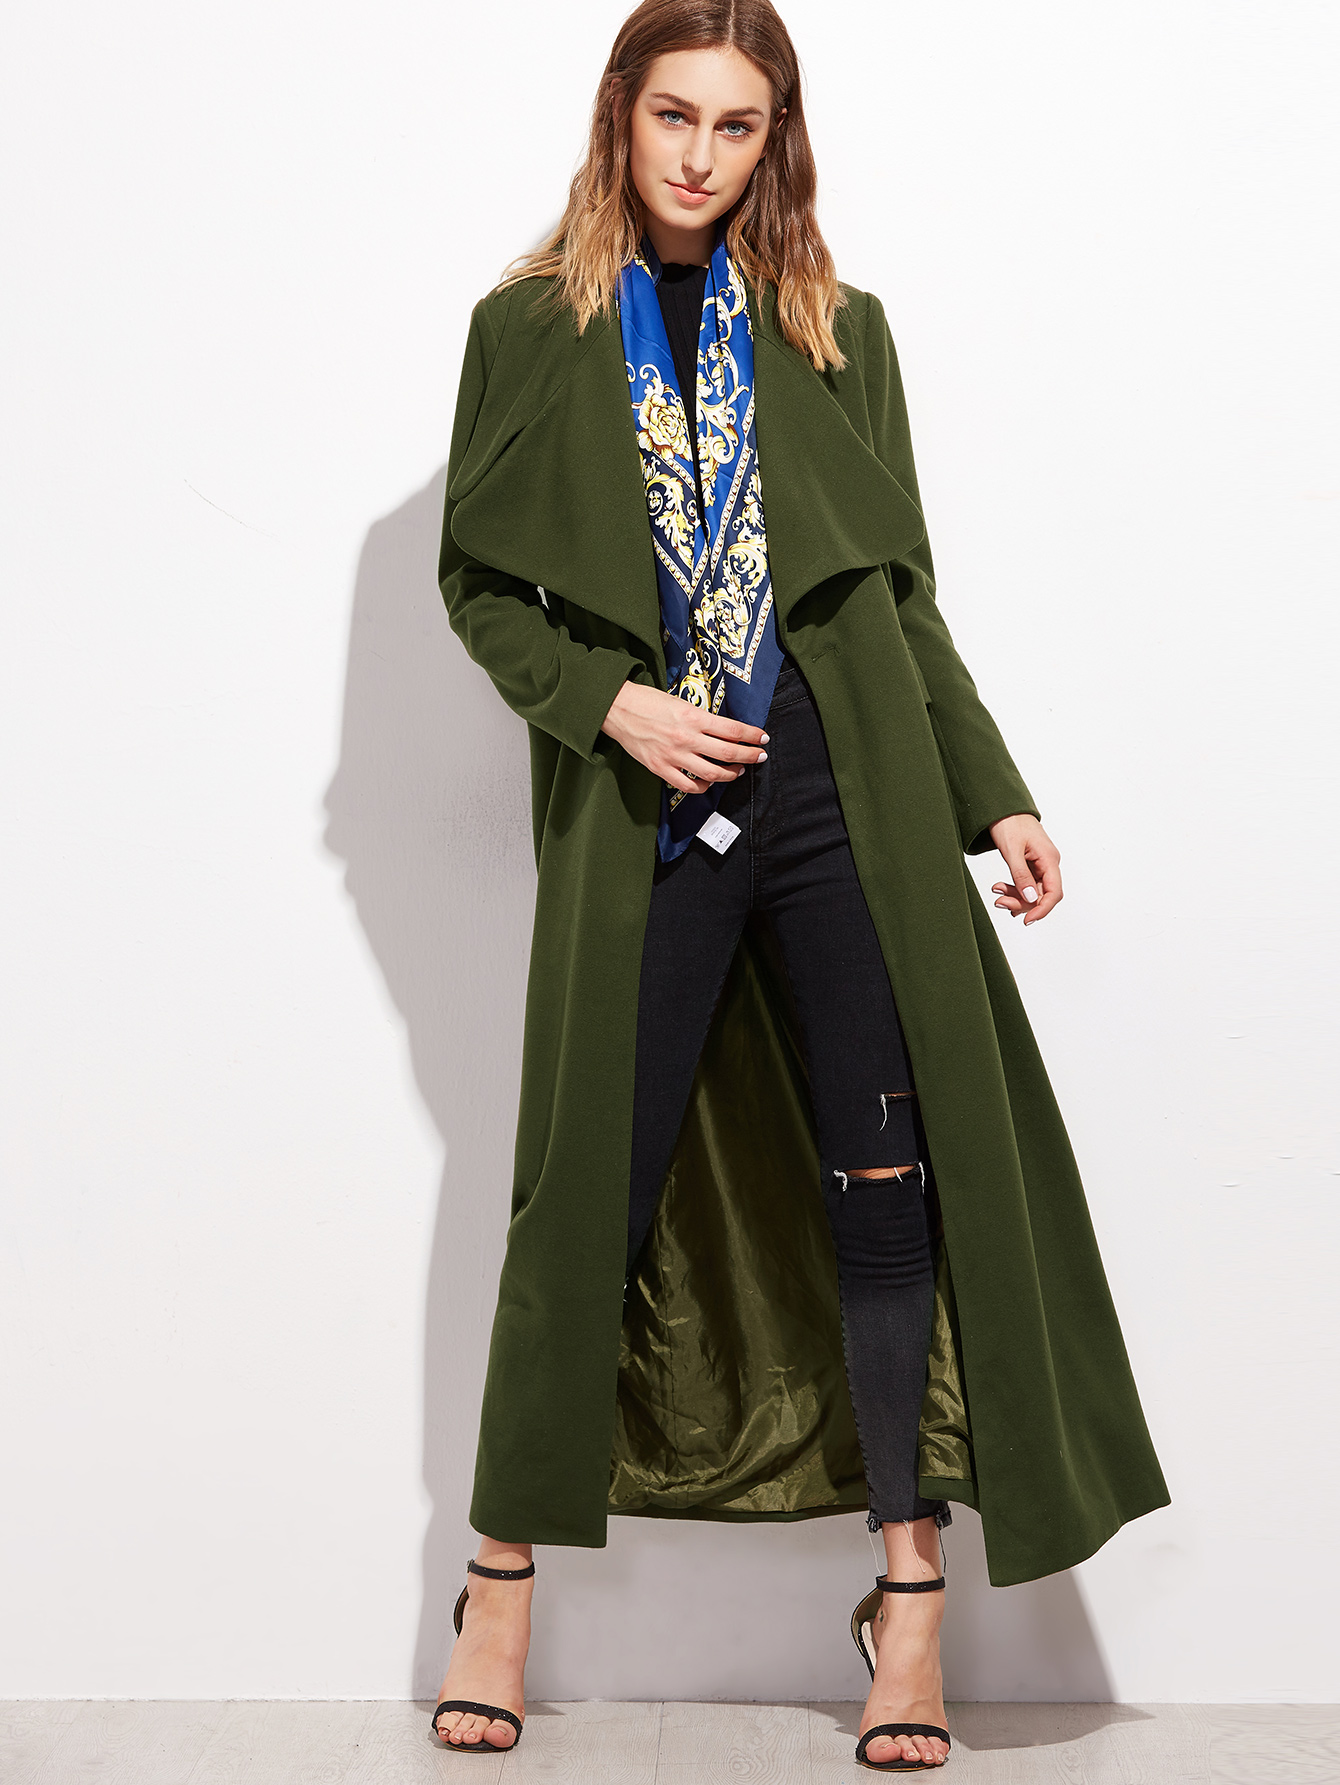 What color goes with olive green? - Quora